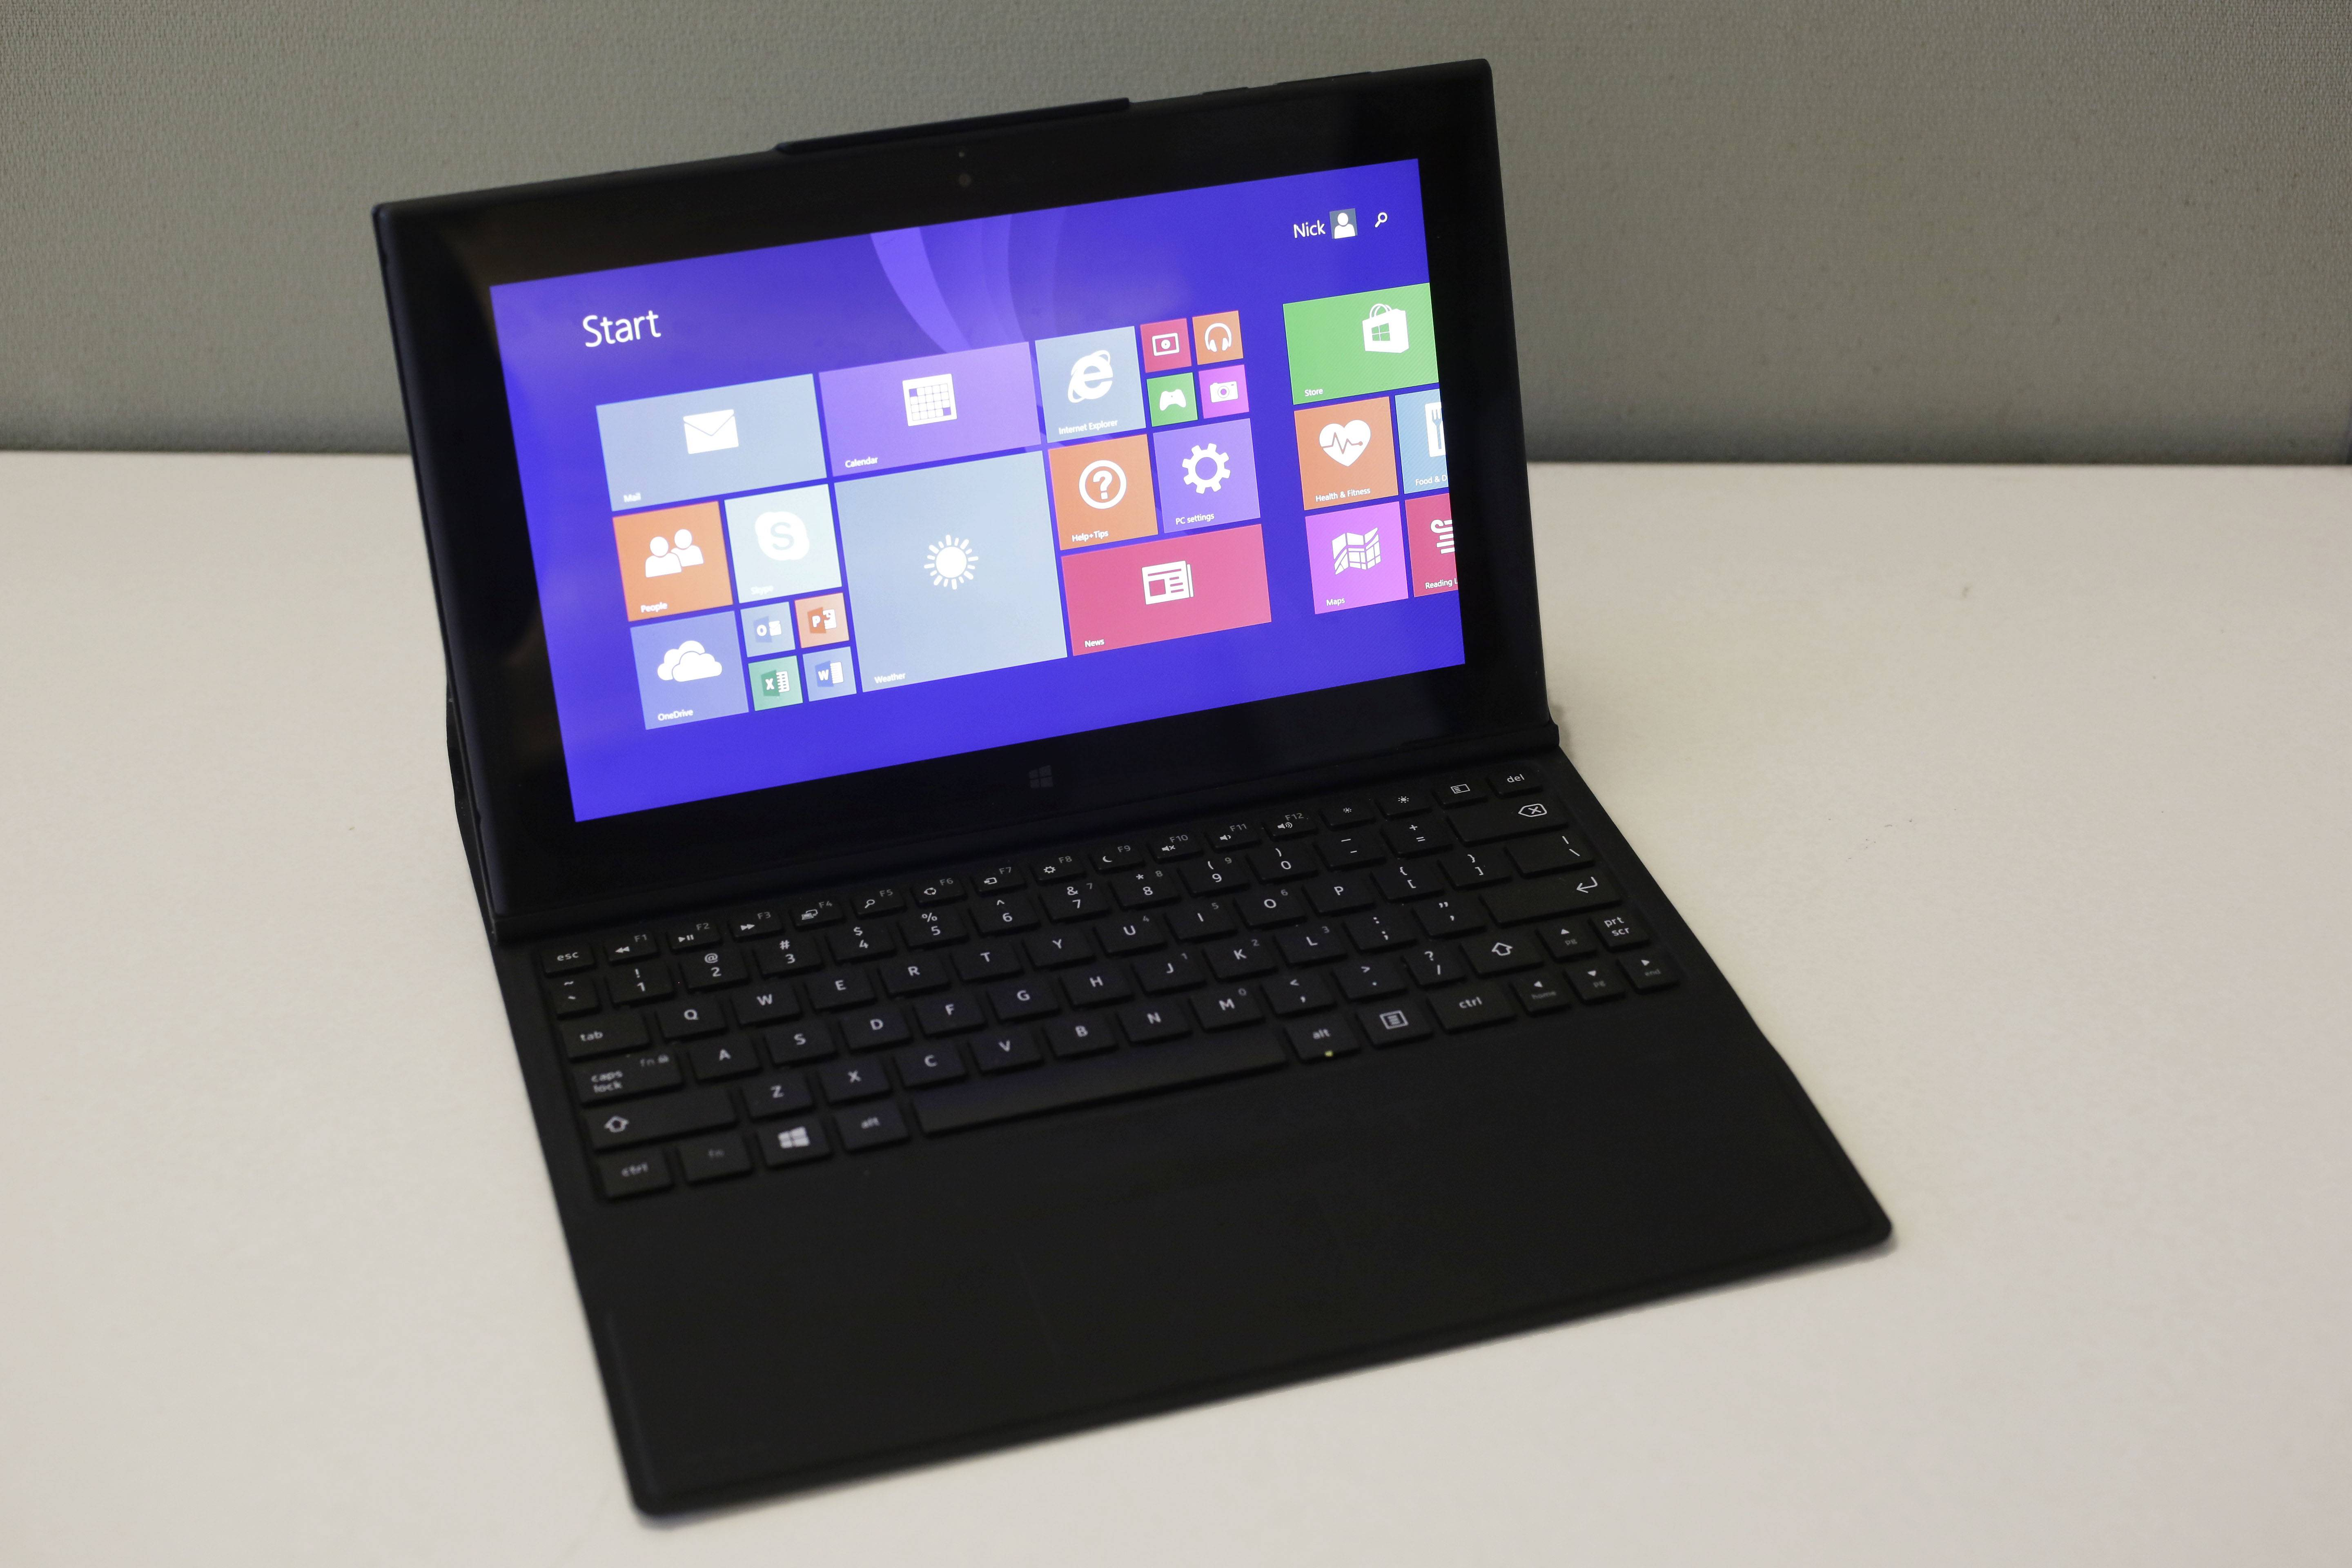 This Friday, June 20, 2014 photo shows the Lumia 2520 tablet and keyboard, in New York. The tablet starts at about $600 and the optional keyboard cover is another $150.